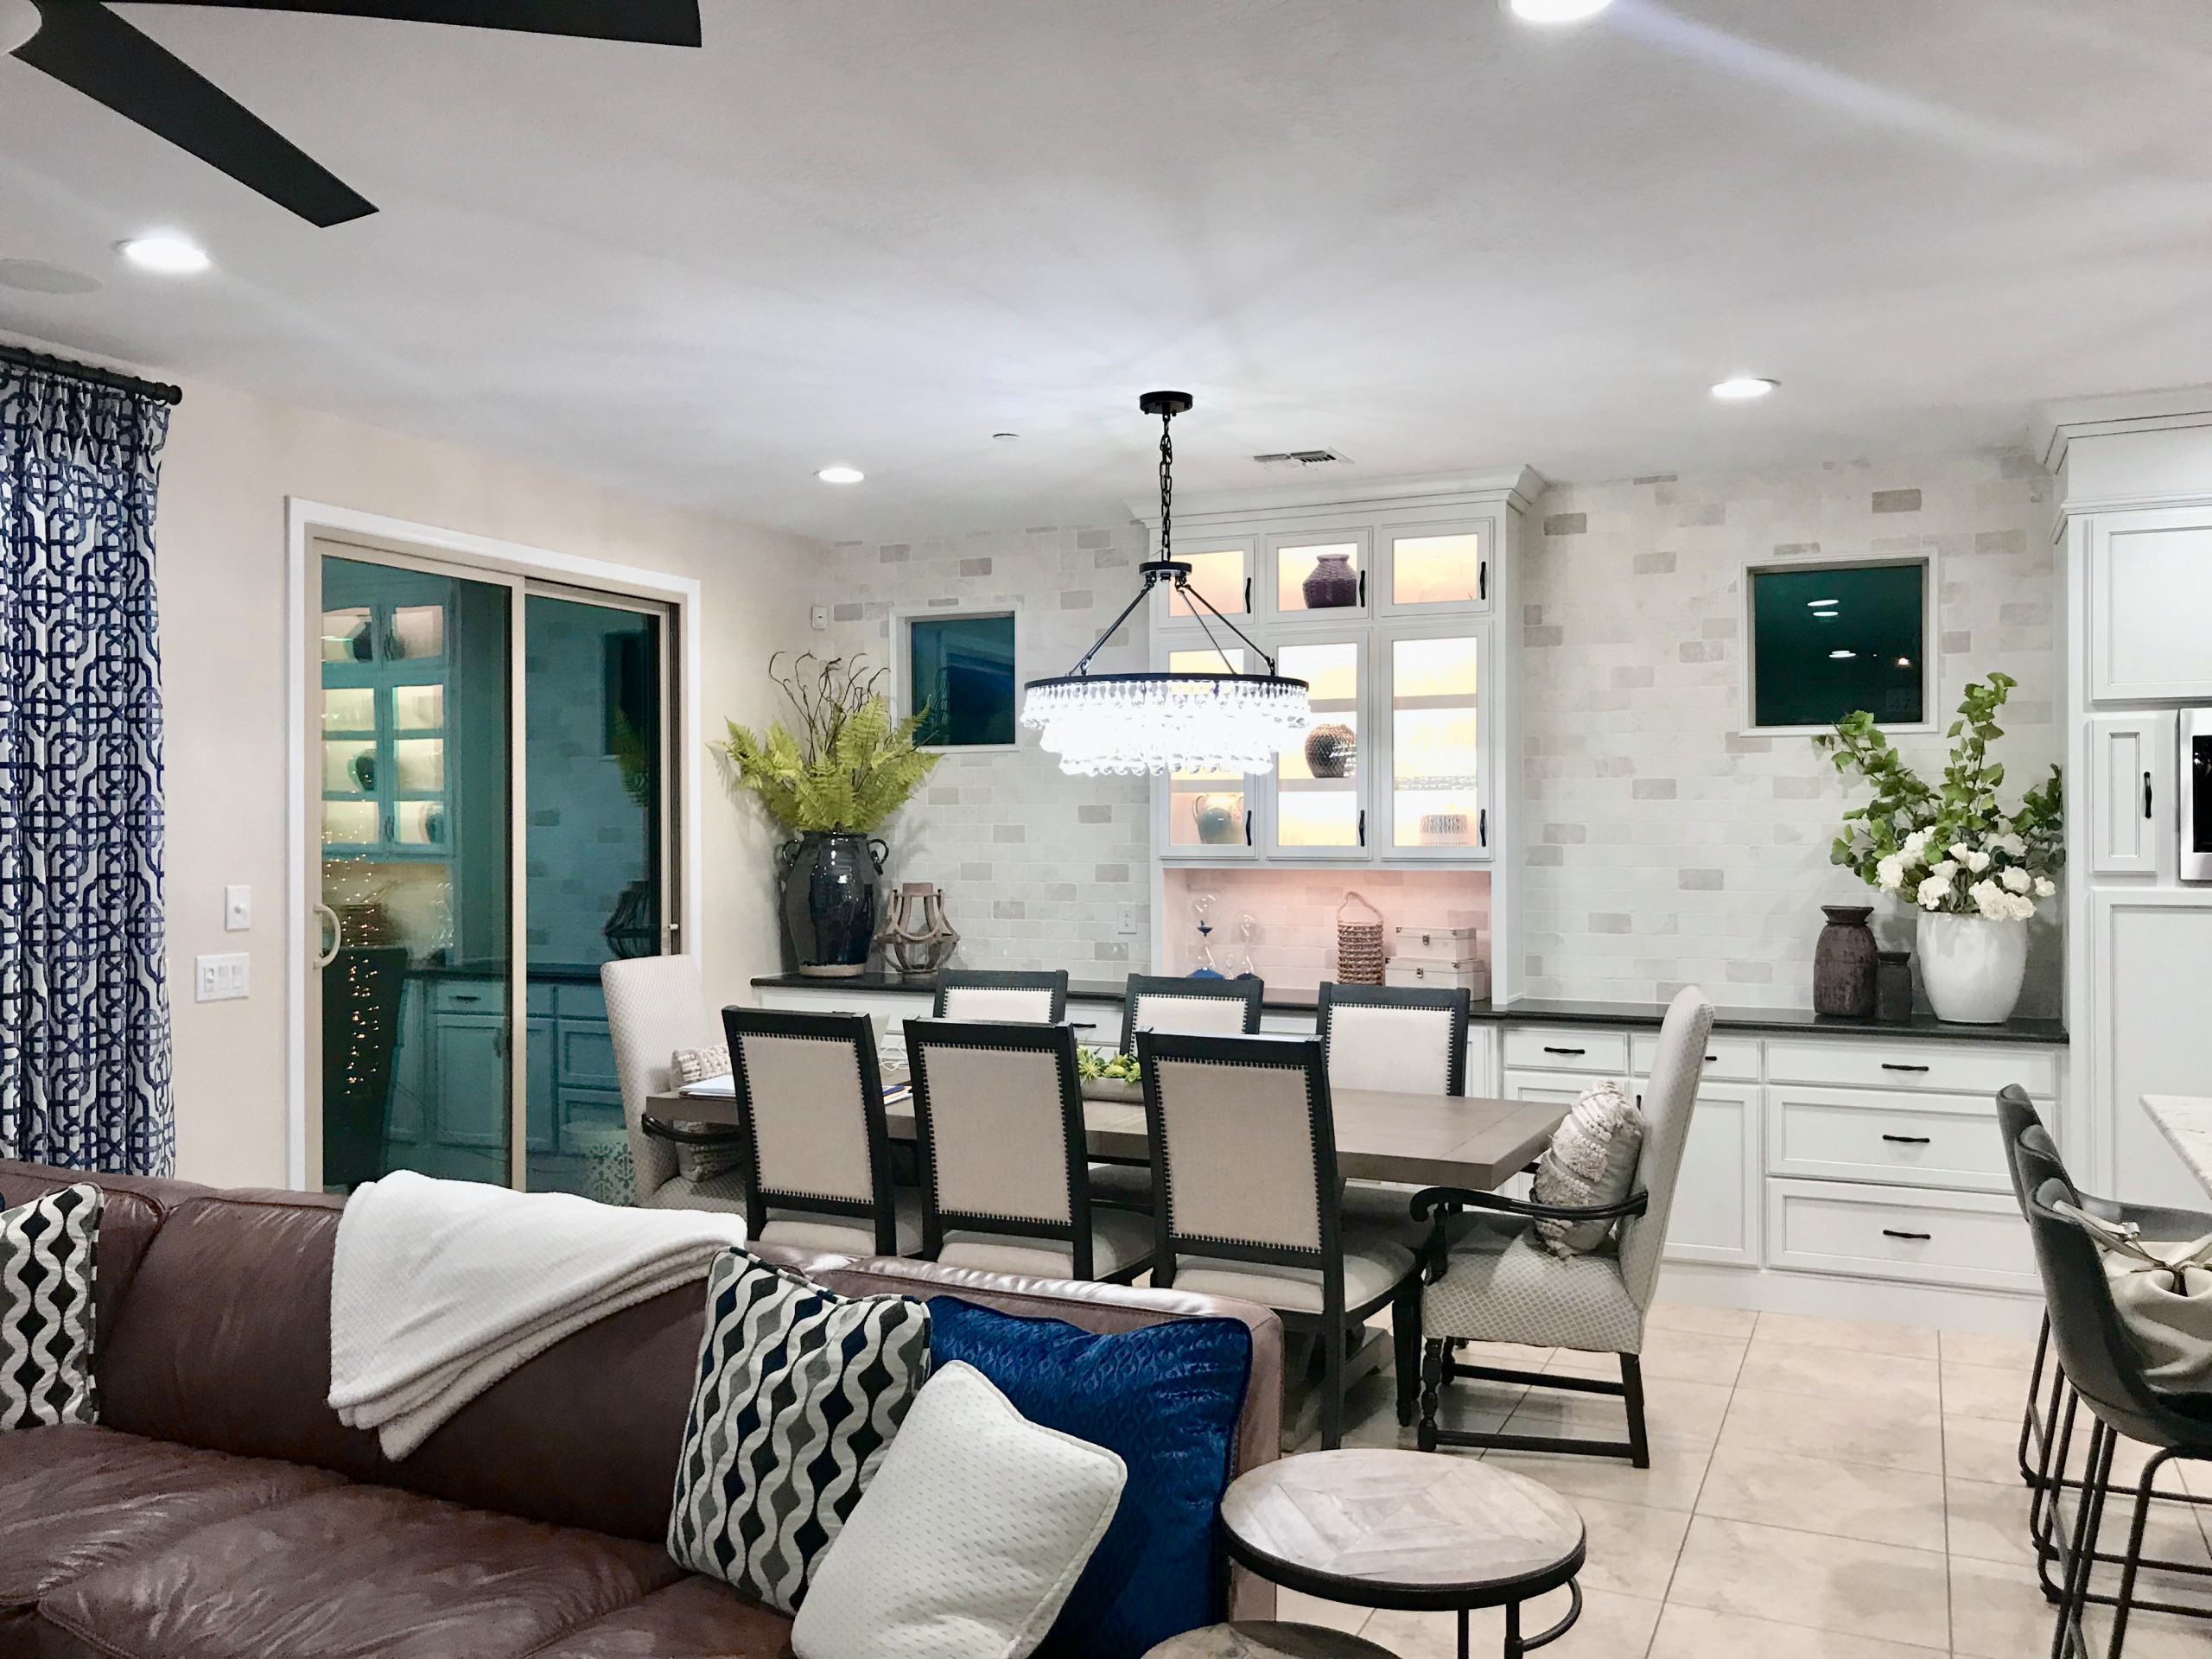 Inspiration for a mid-sized transitional home design remodel in Phoenix